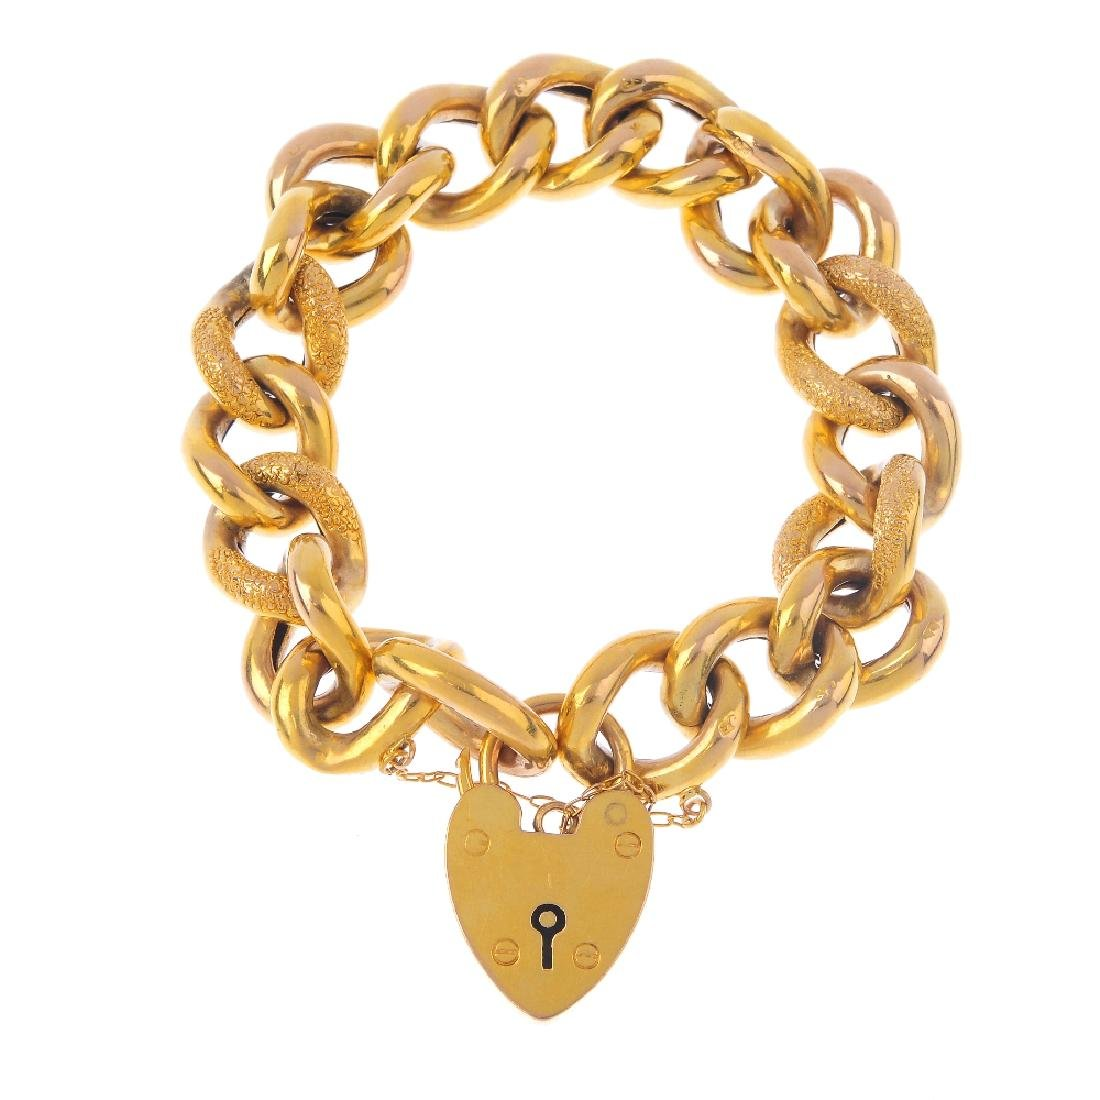 An early 20th century 9ct gold bracelet. The curb-link